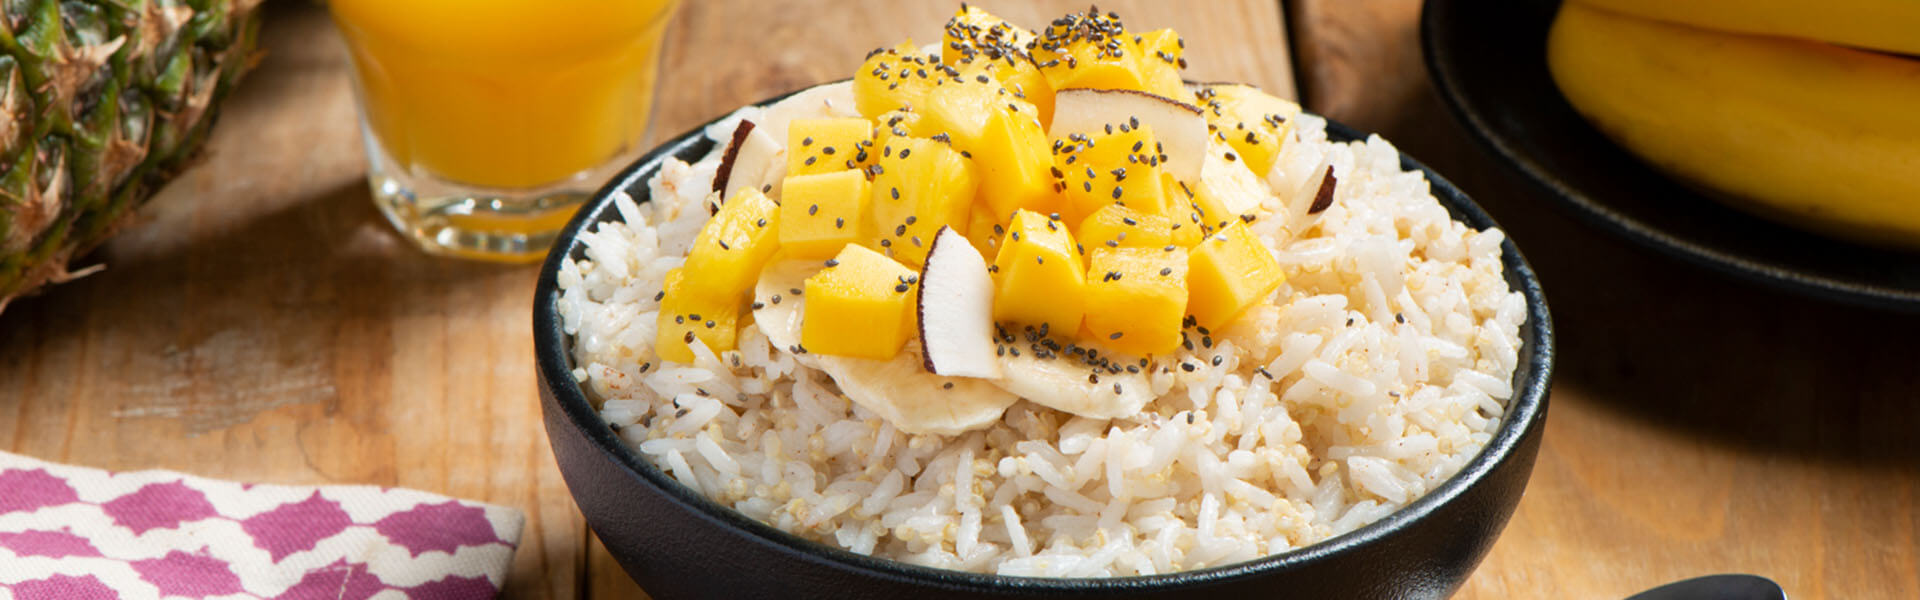 Jasmine Rice & Quinoa Breakfast Bowls with Tropical Fruit